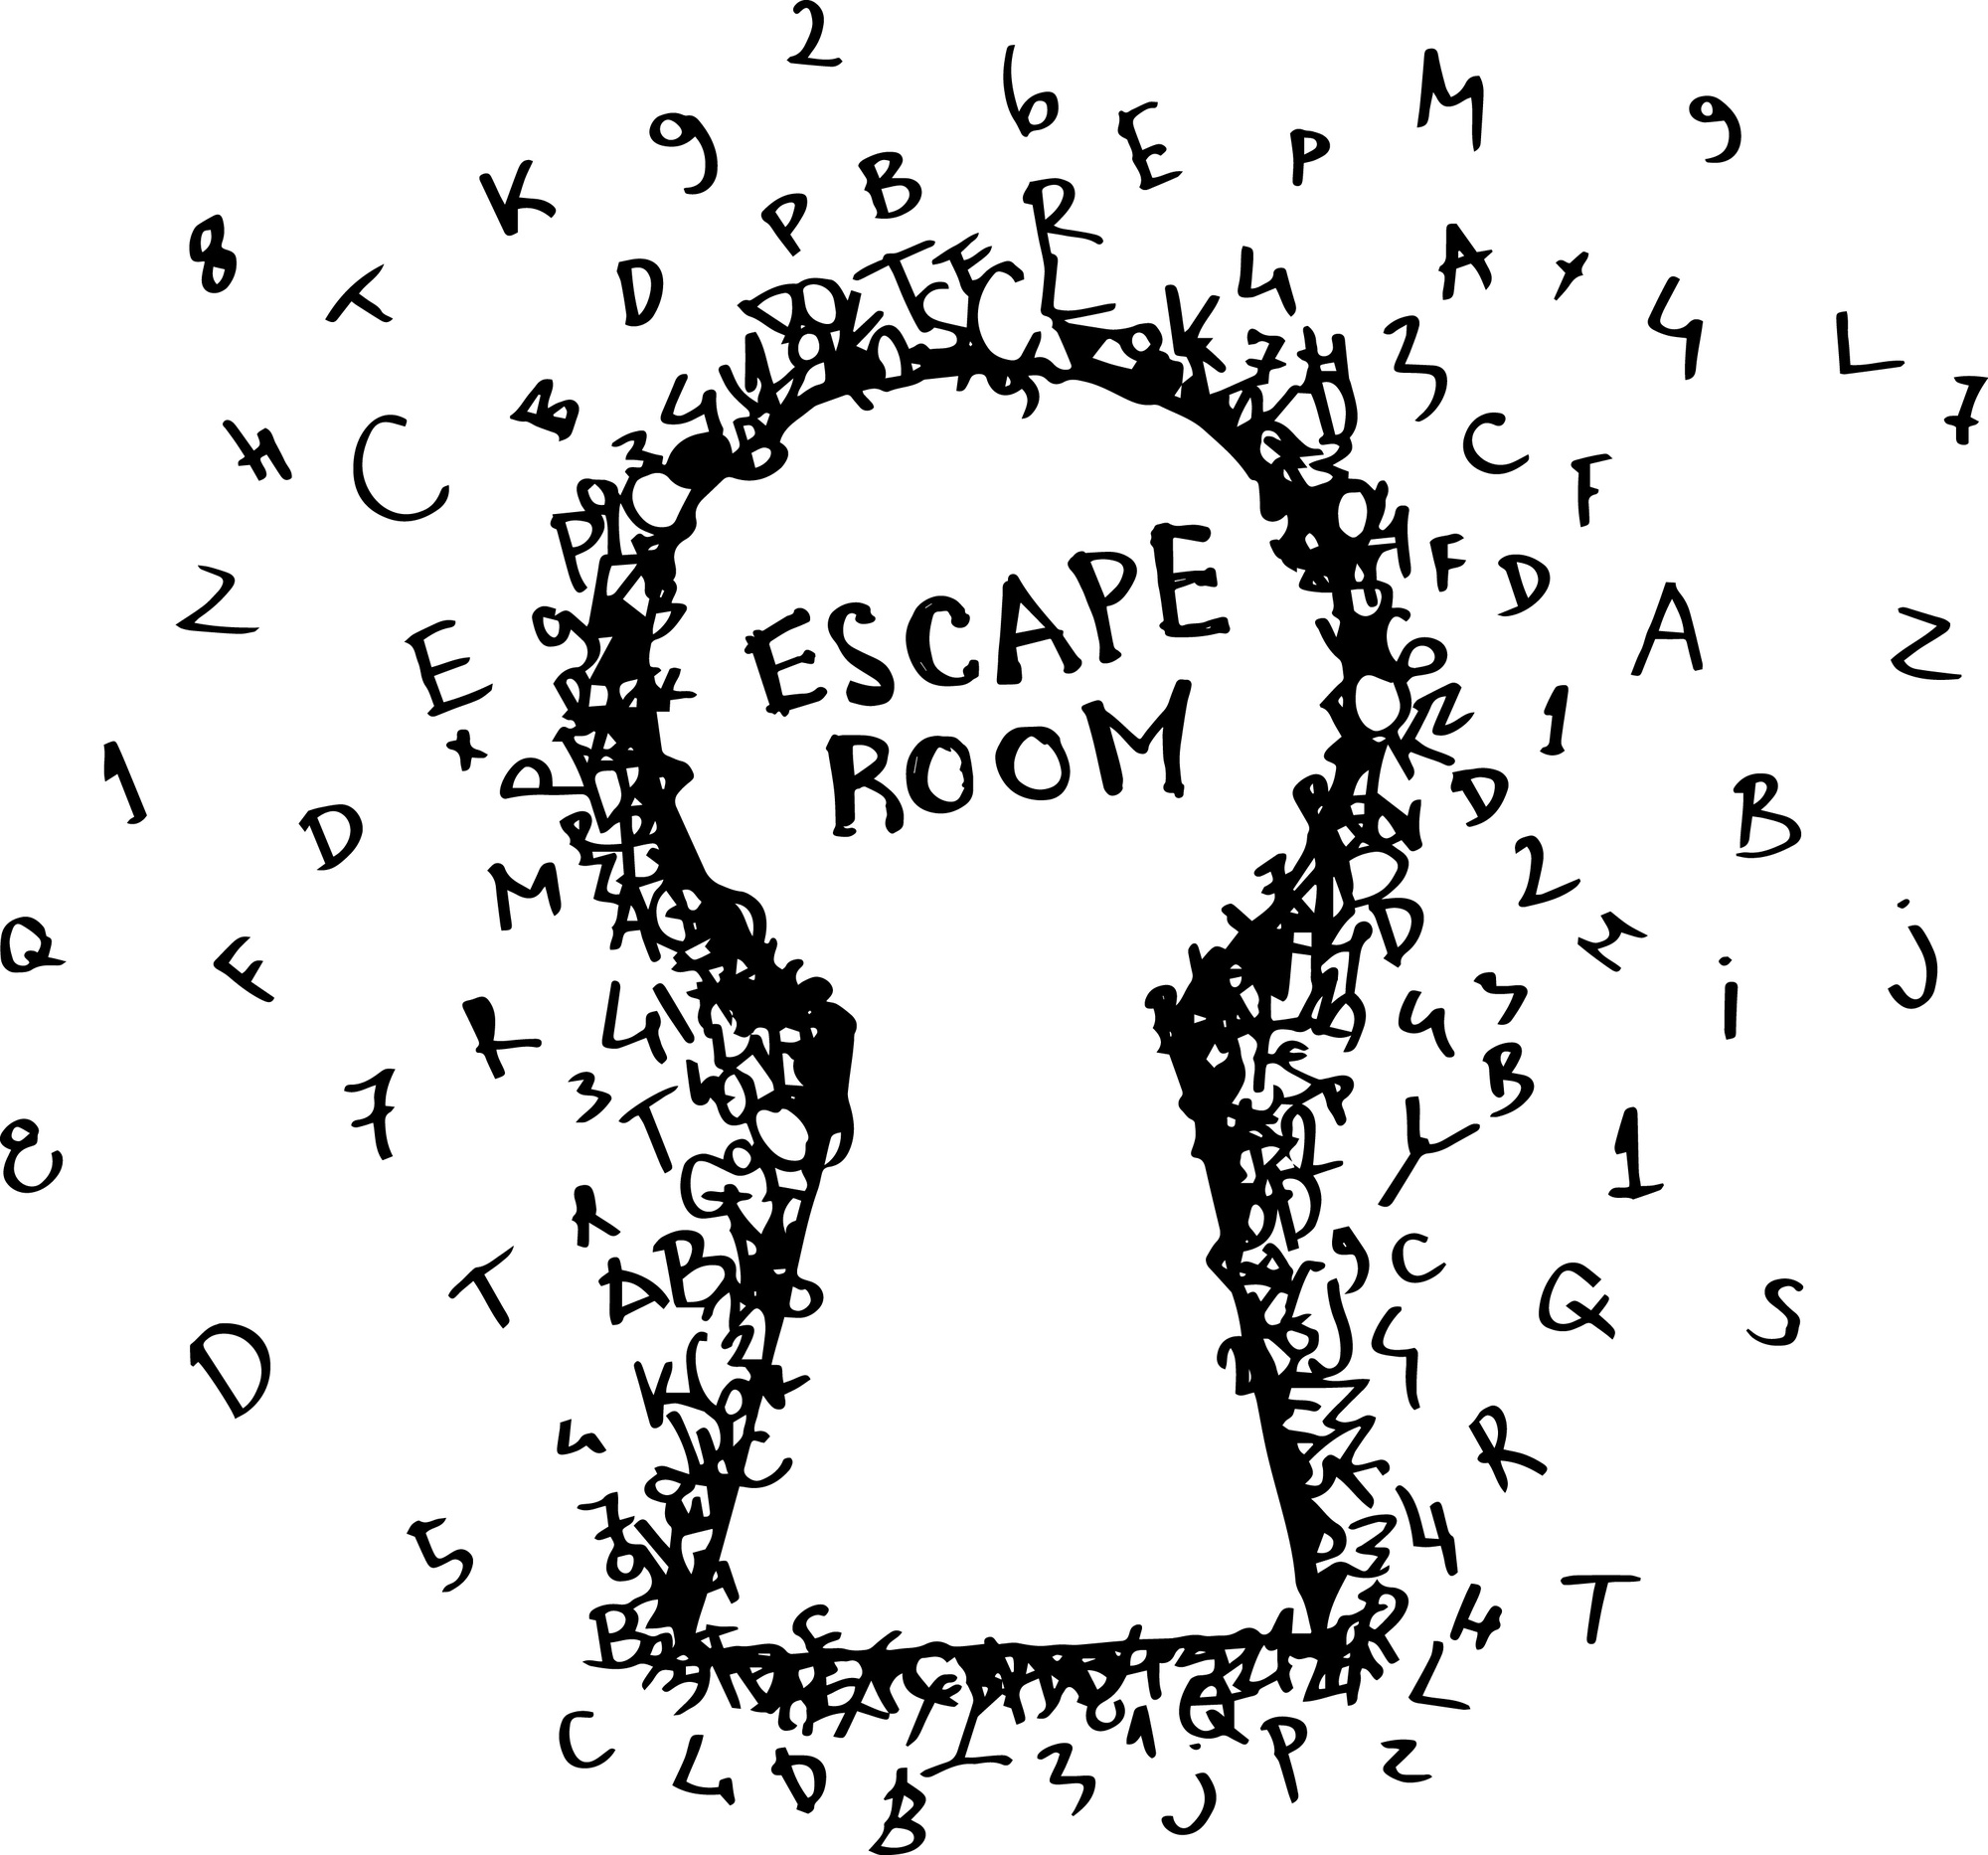 Escape Rooms What They Are And Why You Should Try One